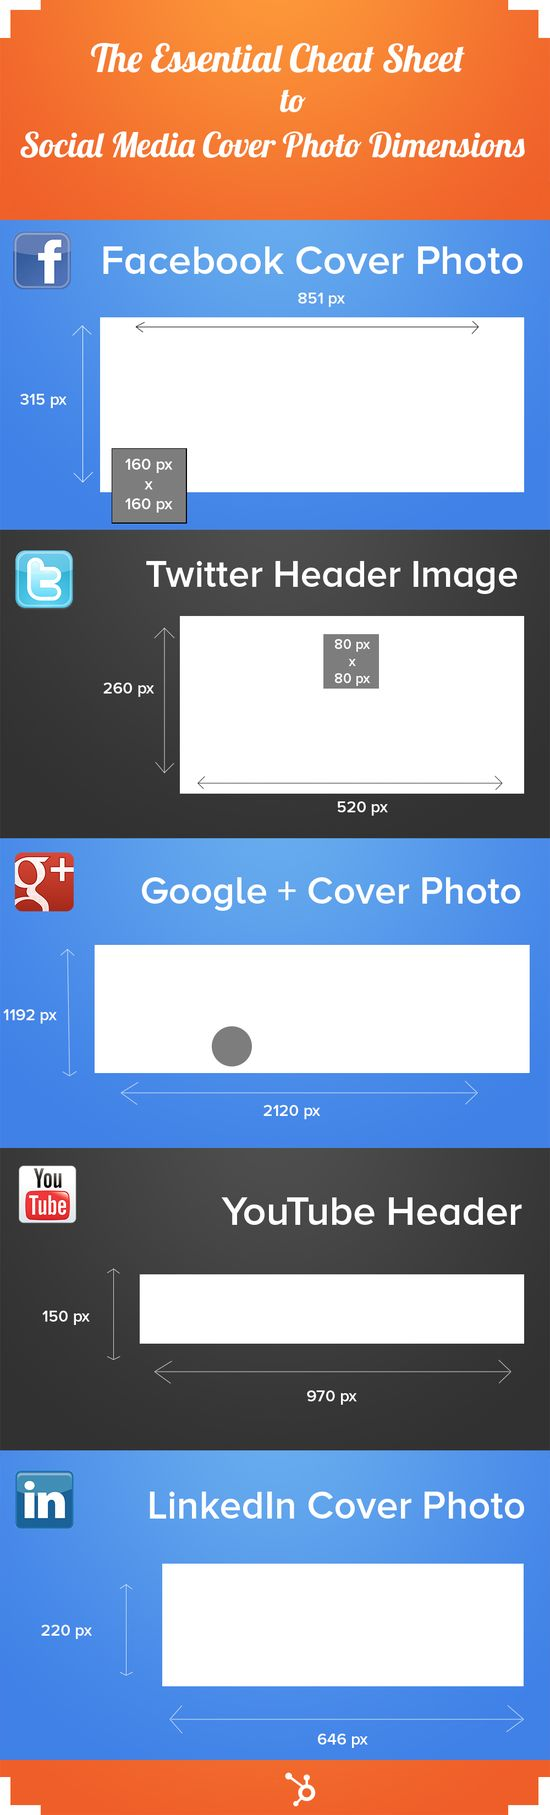 The Essential Image Size Guide to Social Media